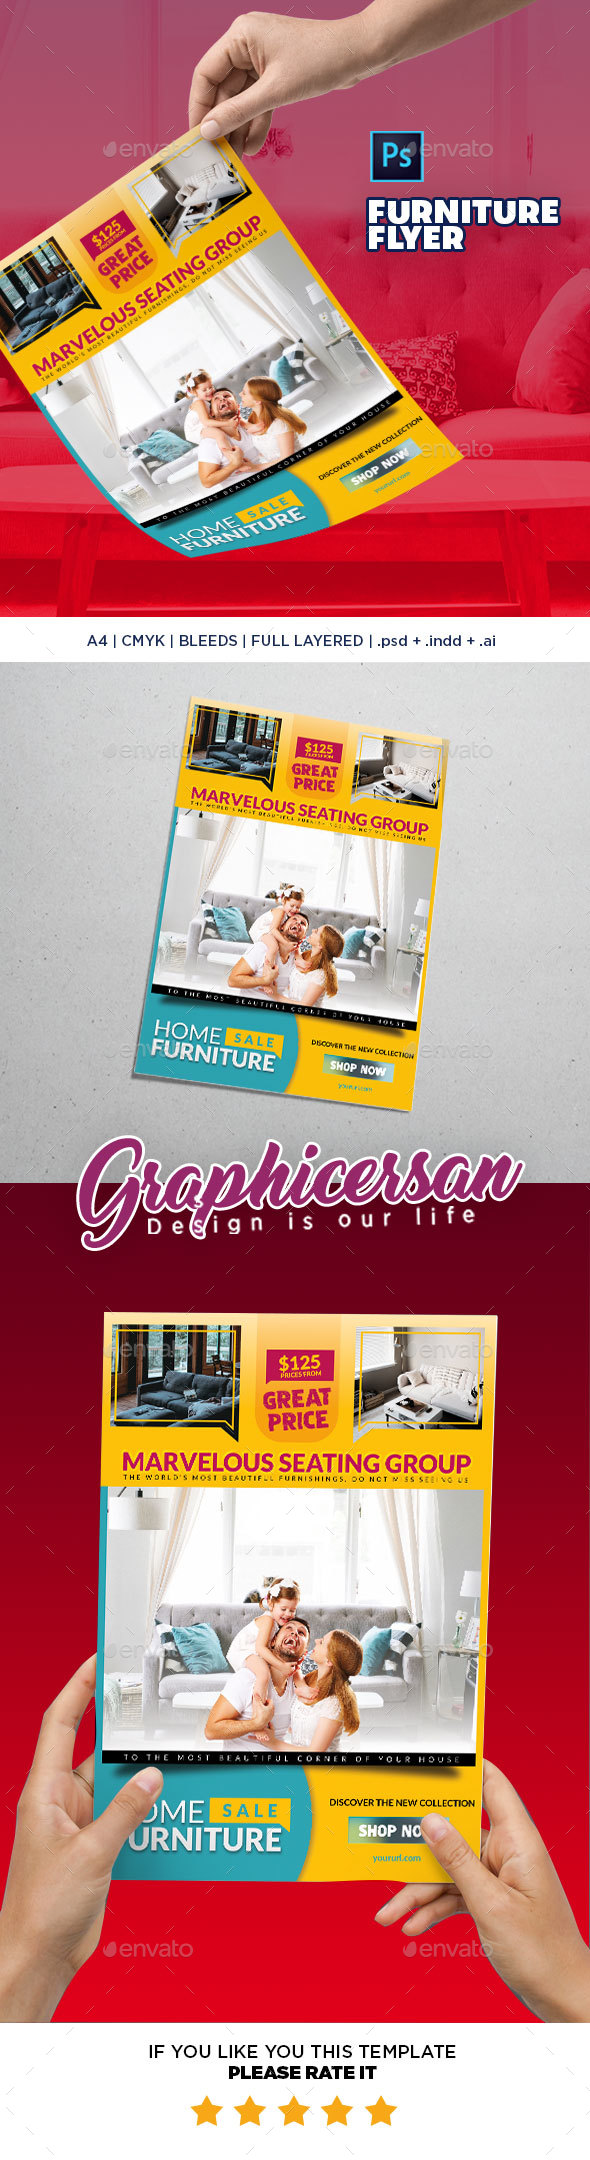 Furniture Flyer - Commerce Flyers